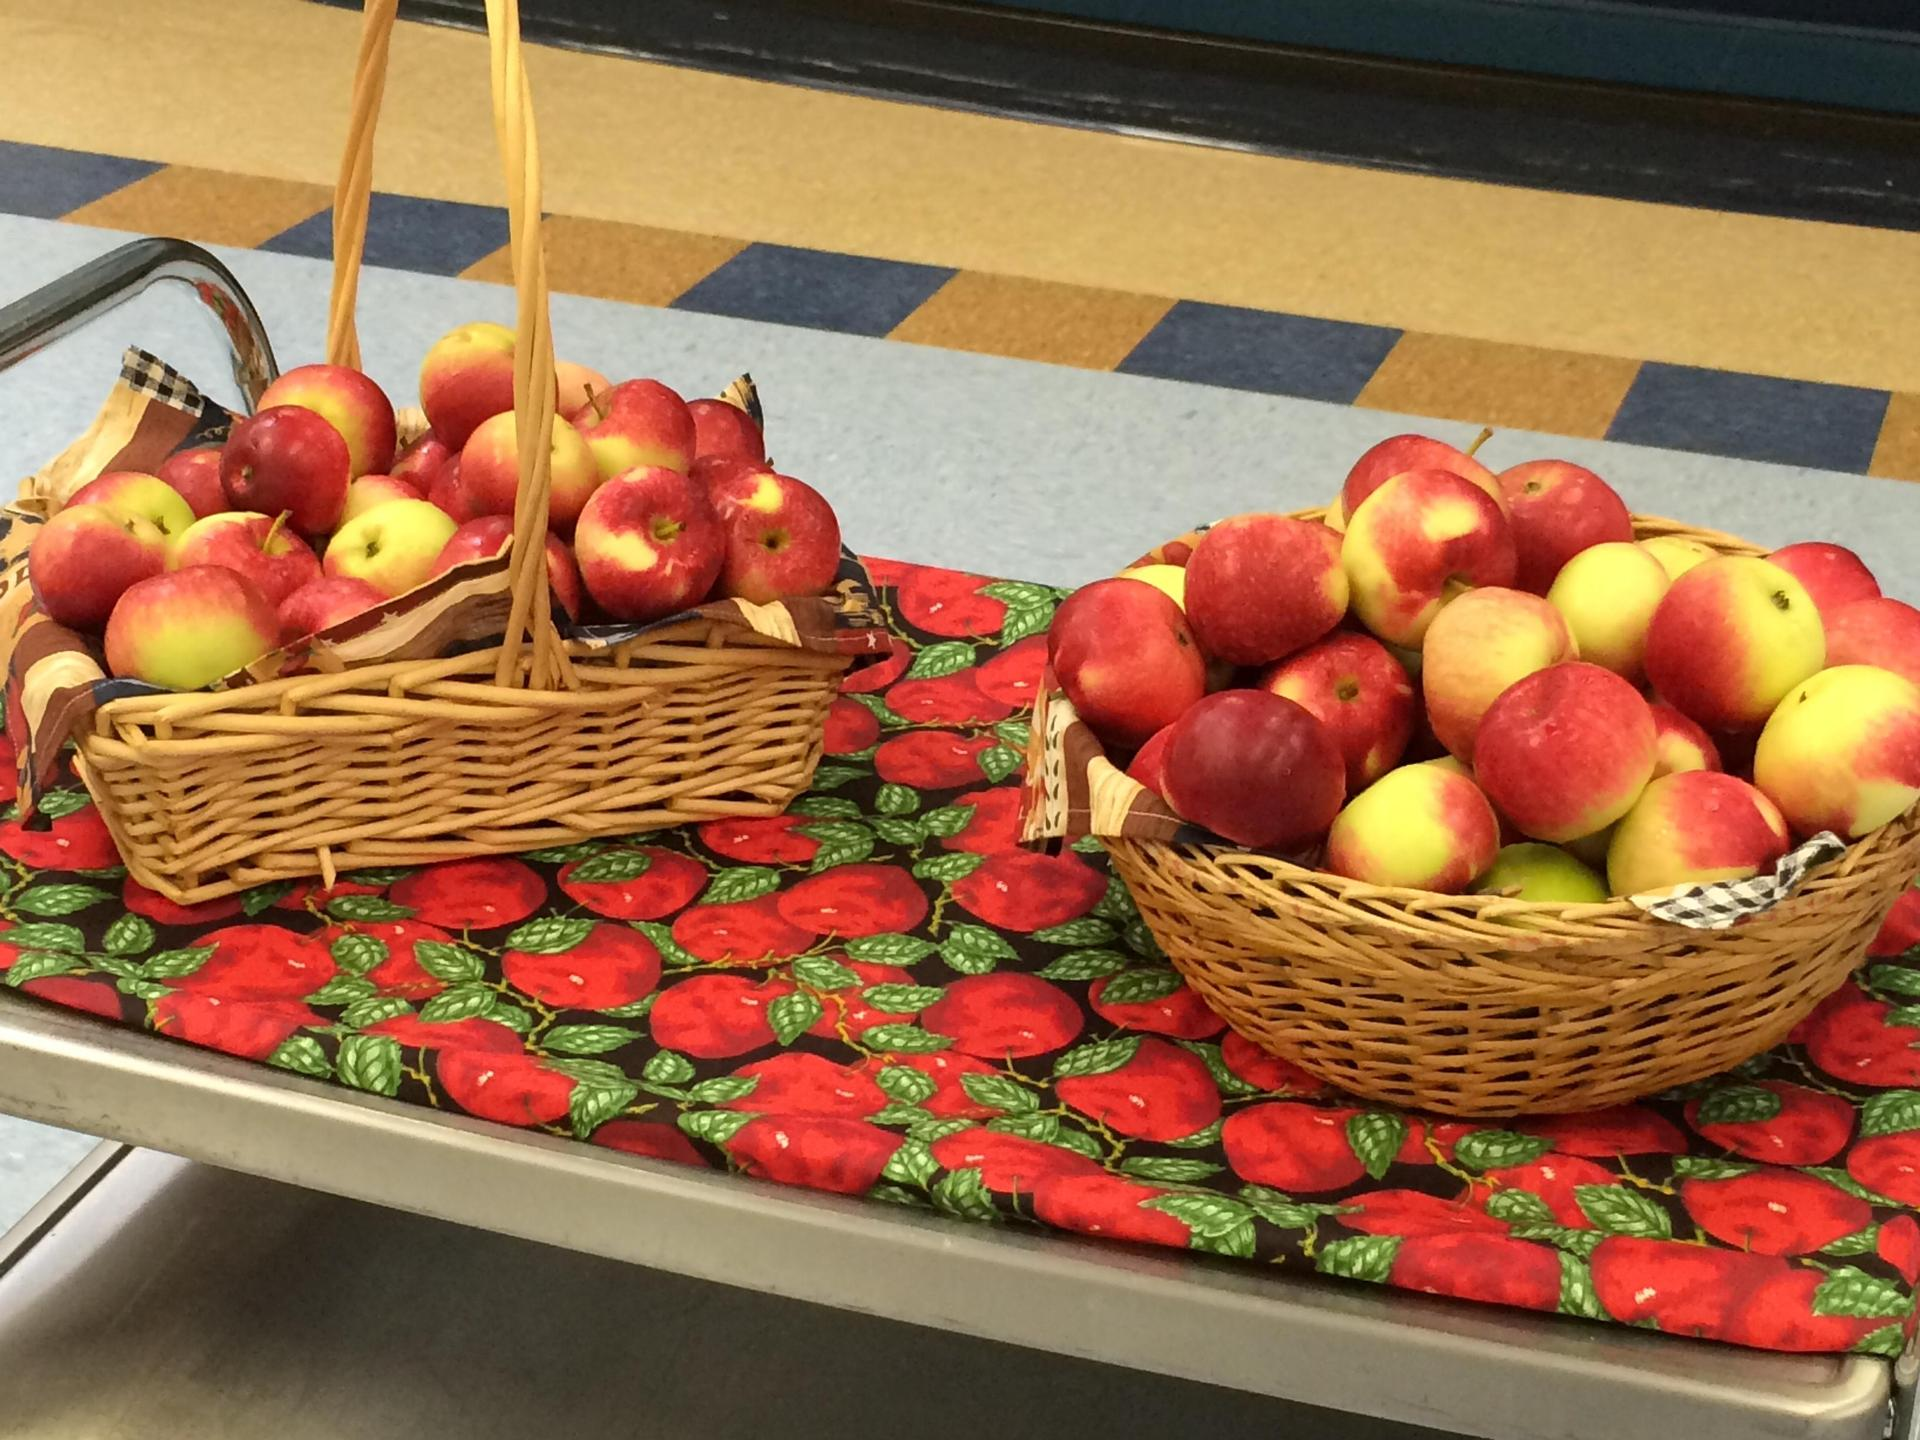 Apples from Hillside orchards